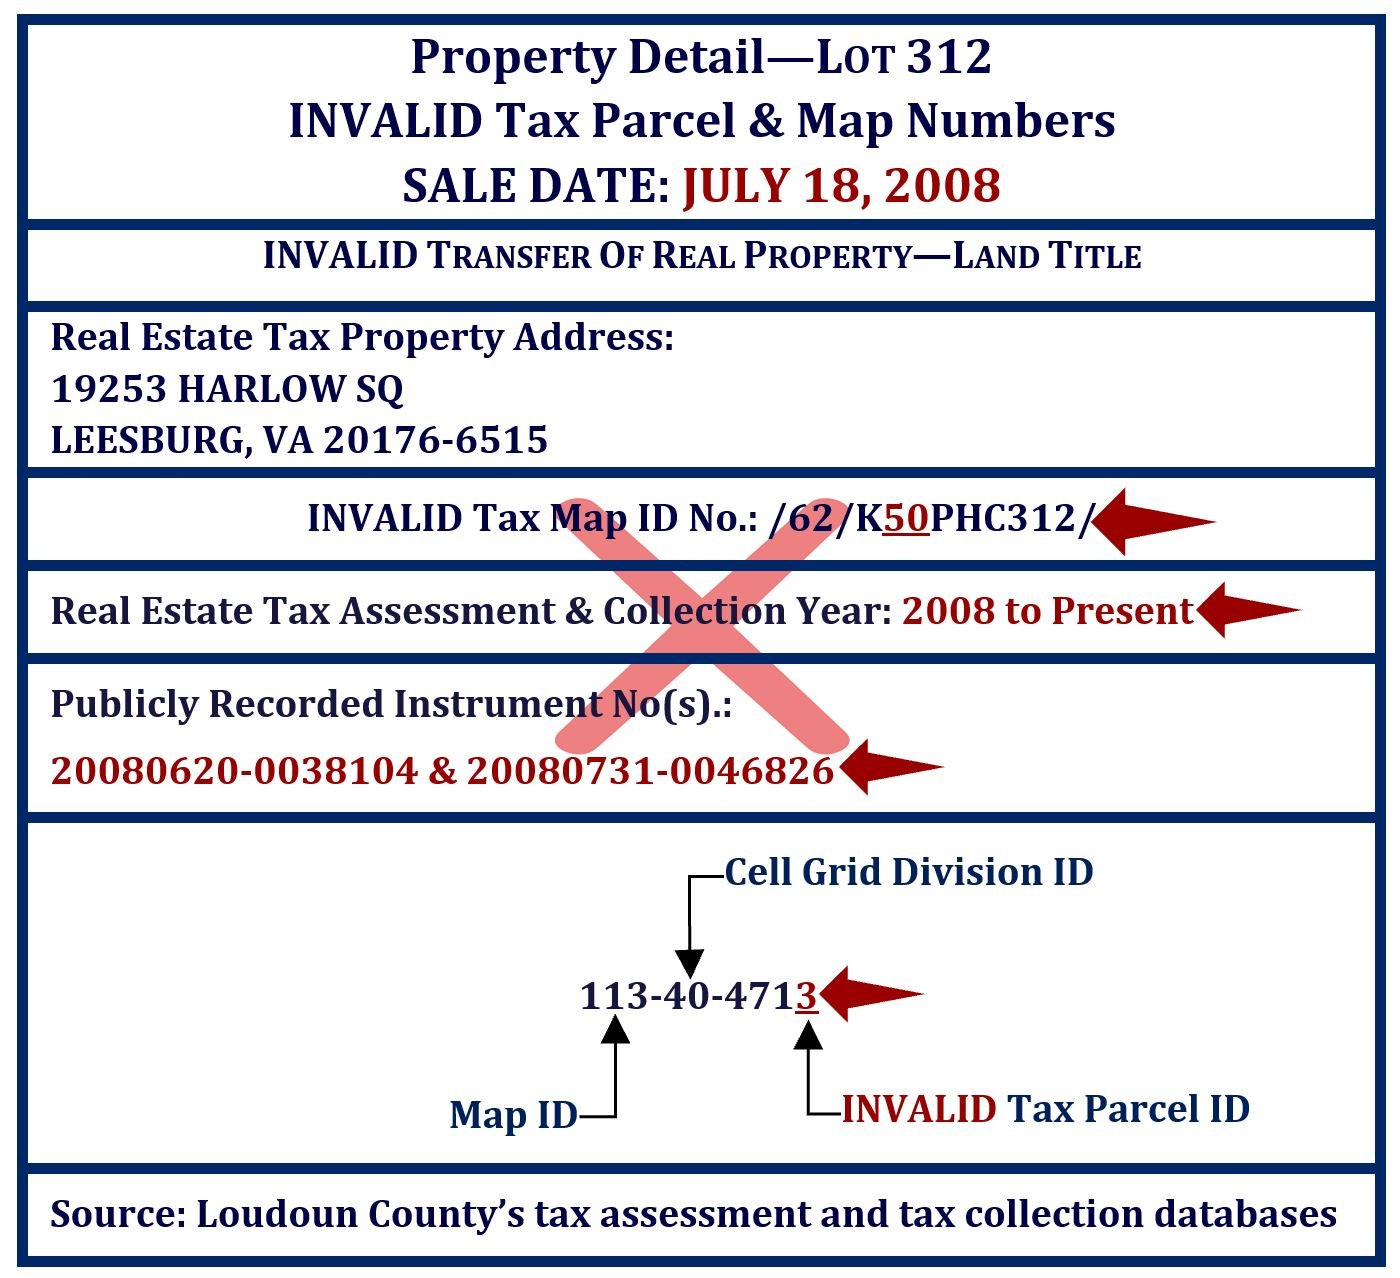 illegal or unauthorized fraudulent alteration of parcel identifiers